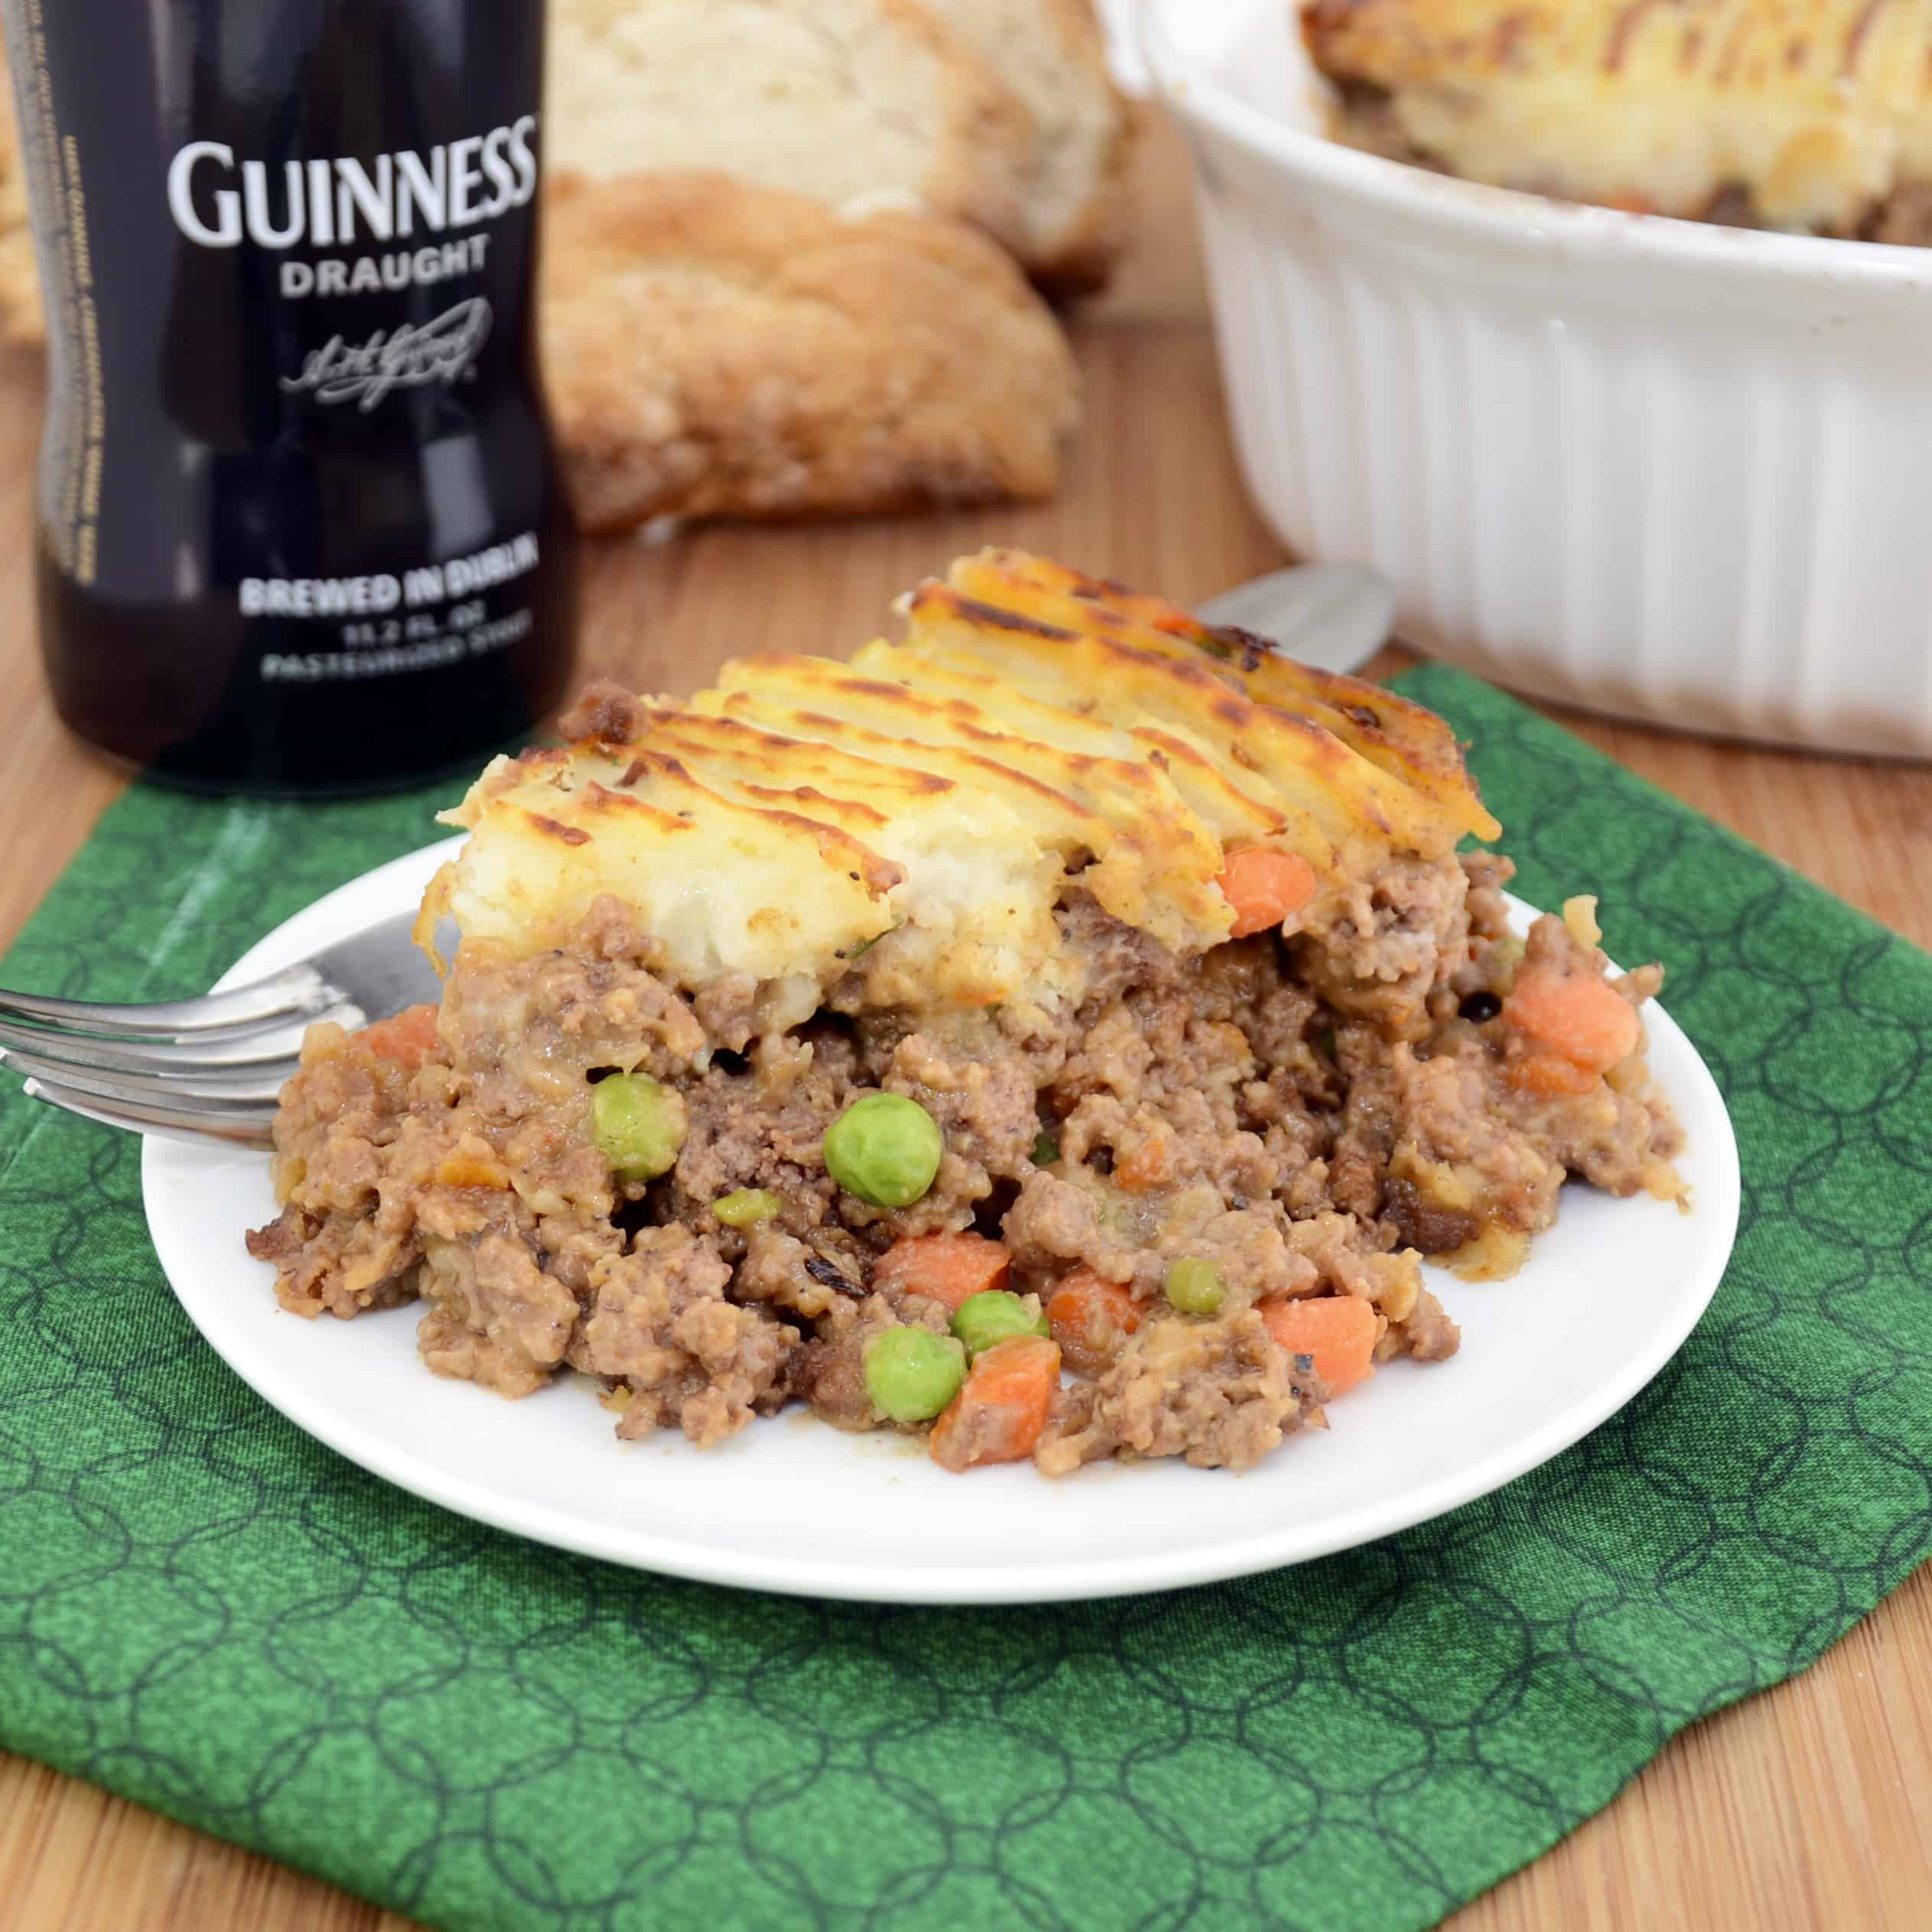 Guinness Shepherd's Pie with Beef